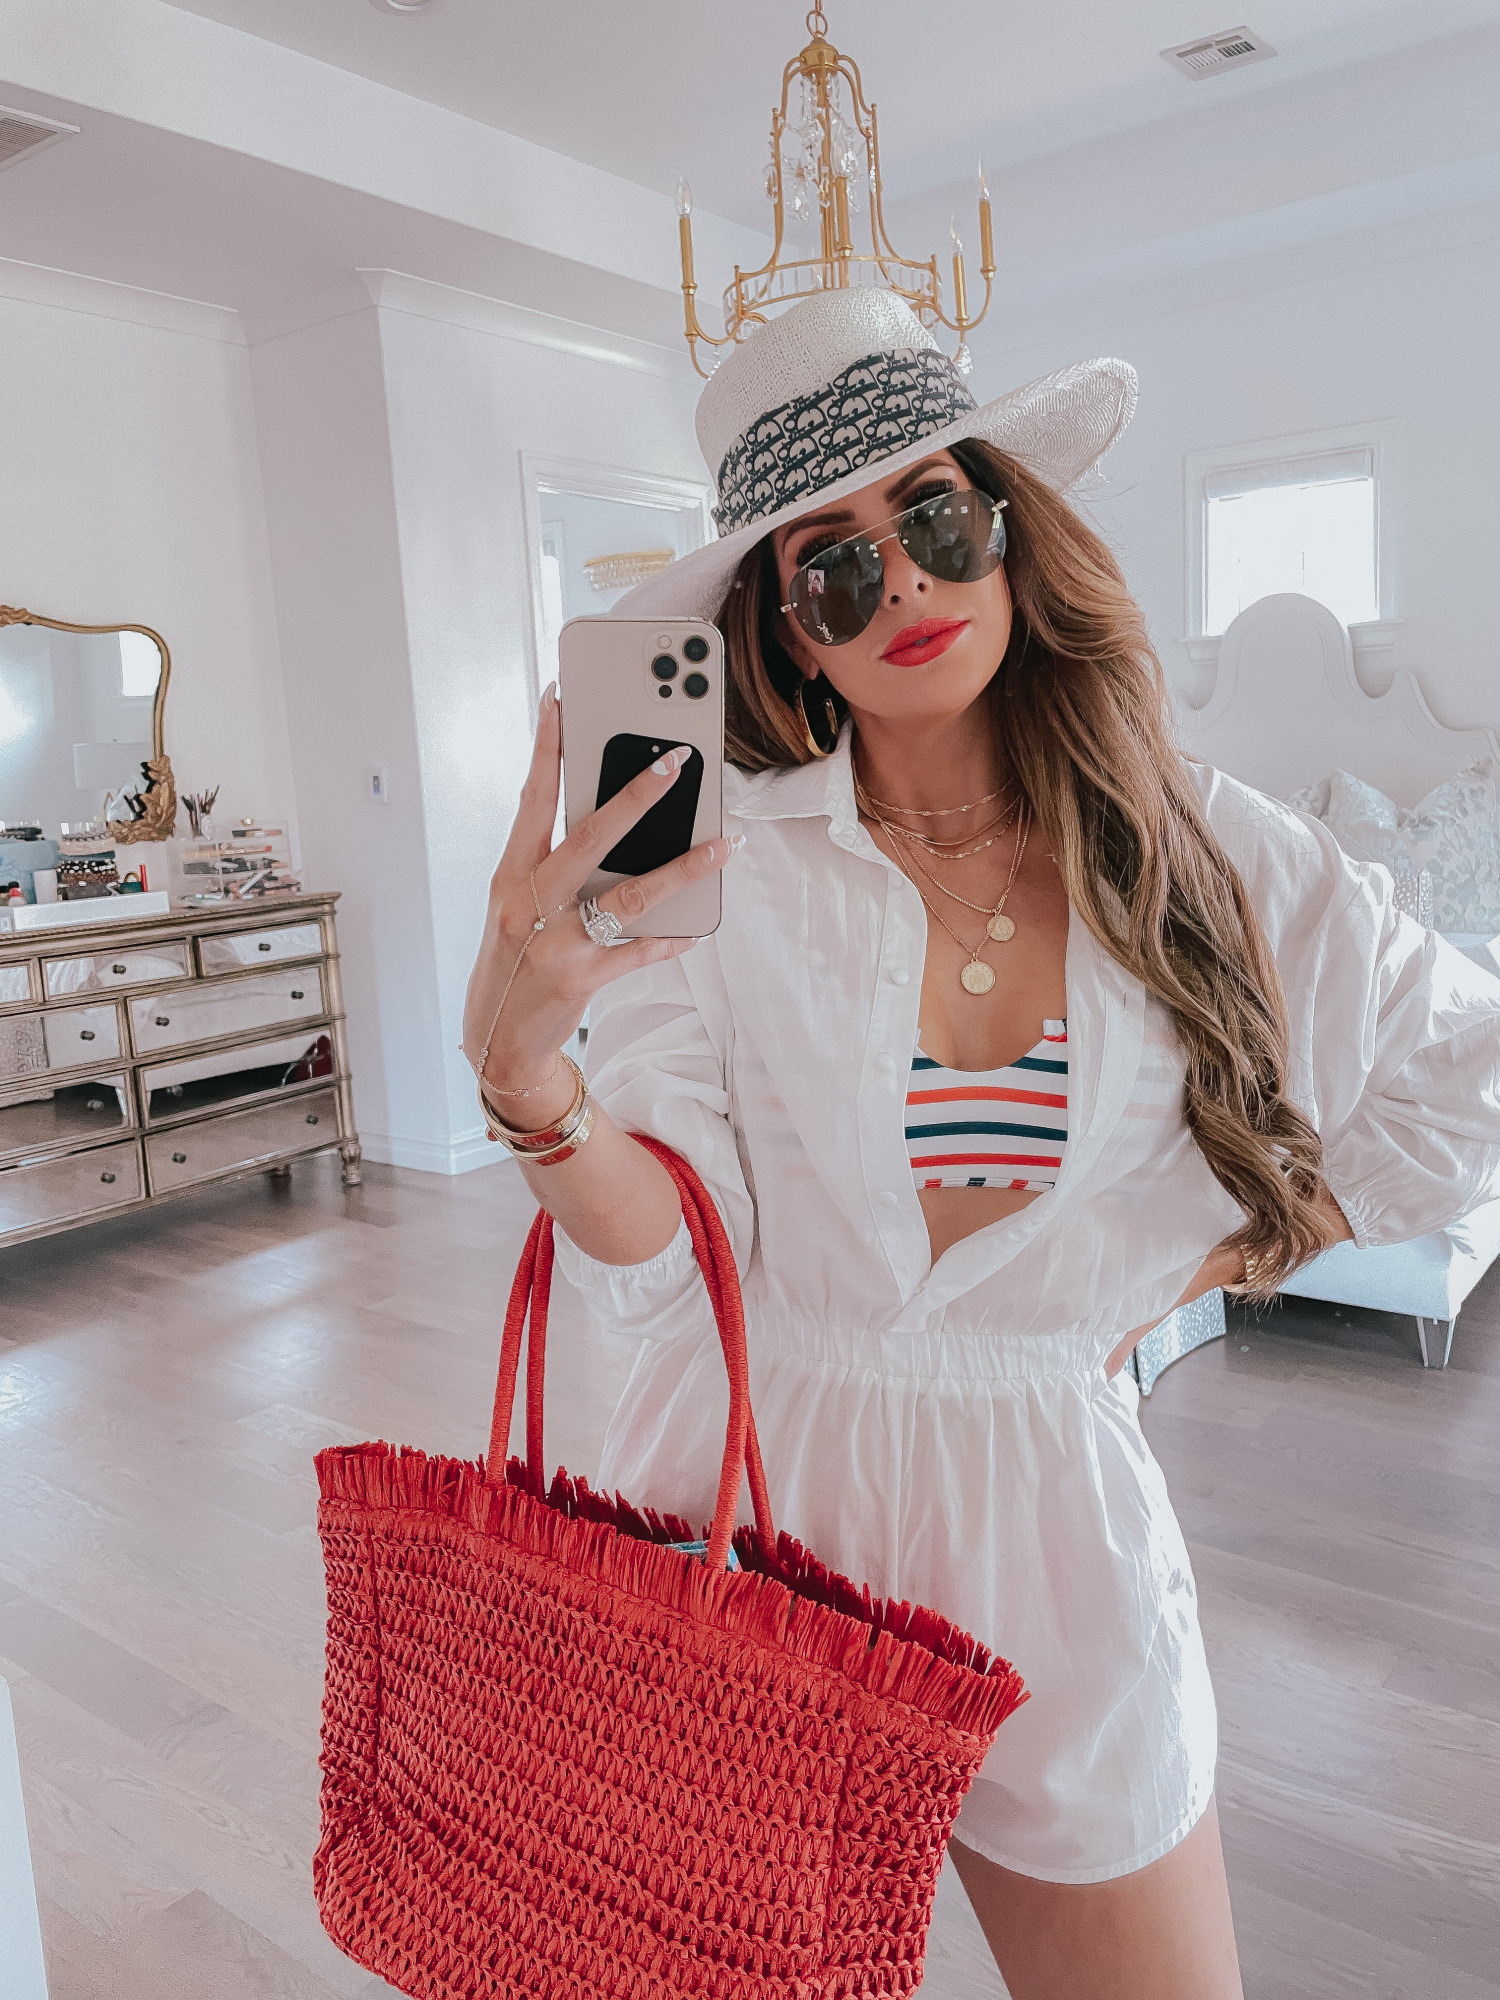 july 4 outfit inspiration 2021, pinterest july 4 outfit, dior scarf tied around hat, Emily gemma | June Instagram Recap by popular US fashion blog, The Sweetest Thing: image of Emily Gemma wearing a white straw hat, white romper, white, red and blue stripe swimsuit top and holding a red straw tote bag.